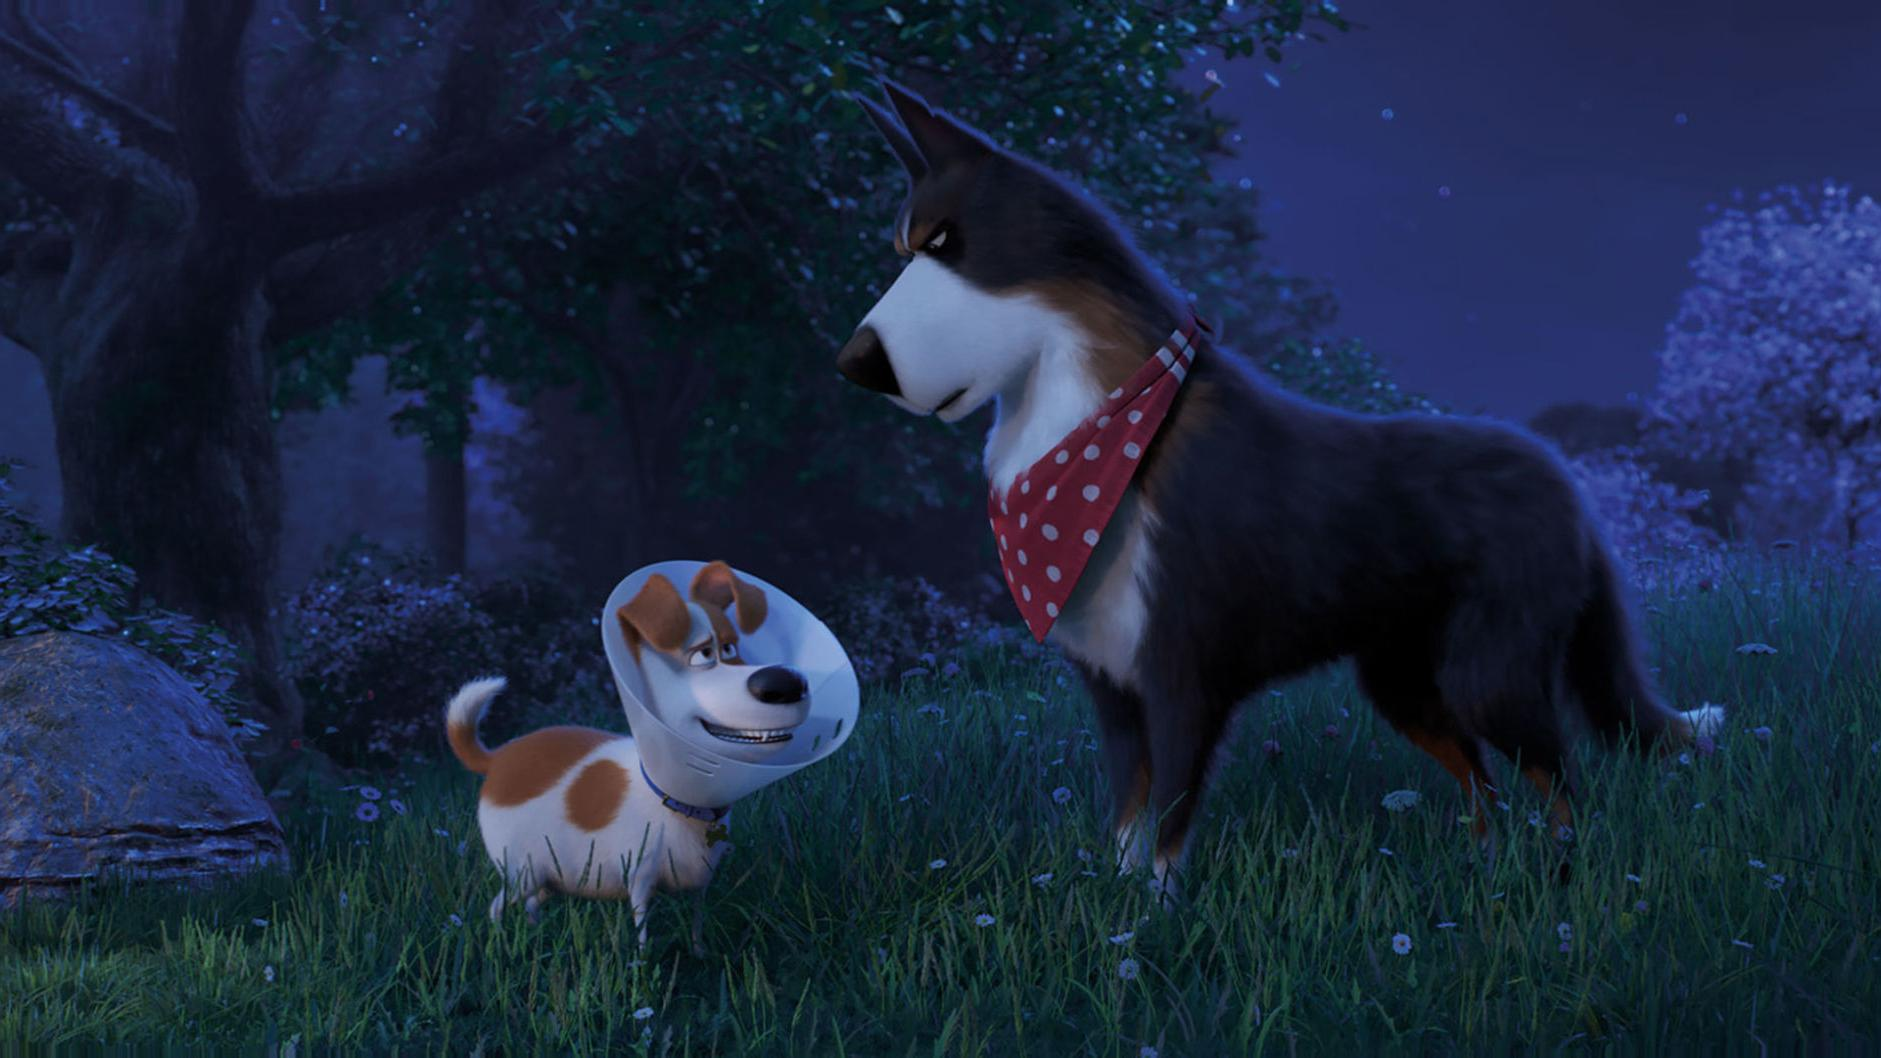 Secret Life Of Pets 2 Adds Babies And Toddlers To Lovable Animal Mix Entertainment Poststar Com